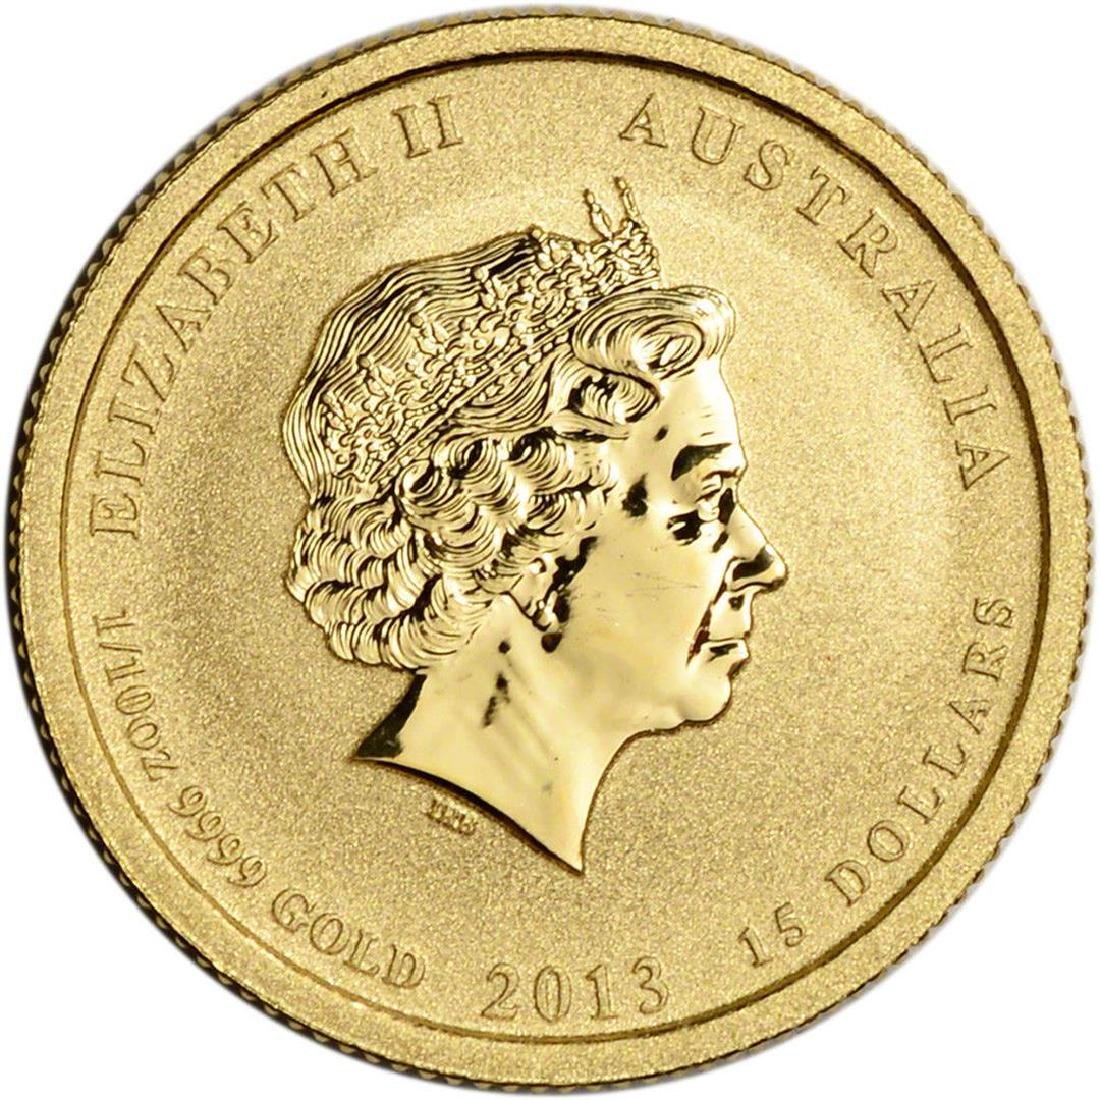 2013 $15 Australia War in the Pacific 1/10 oz Gold Coin - 2